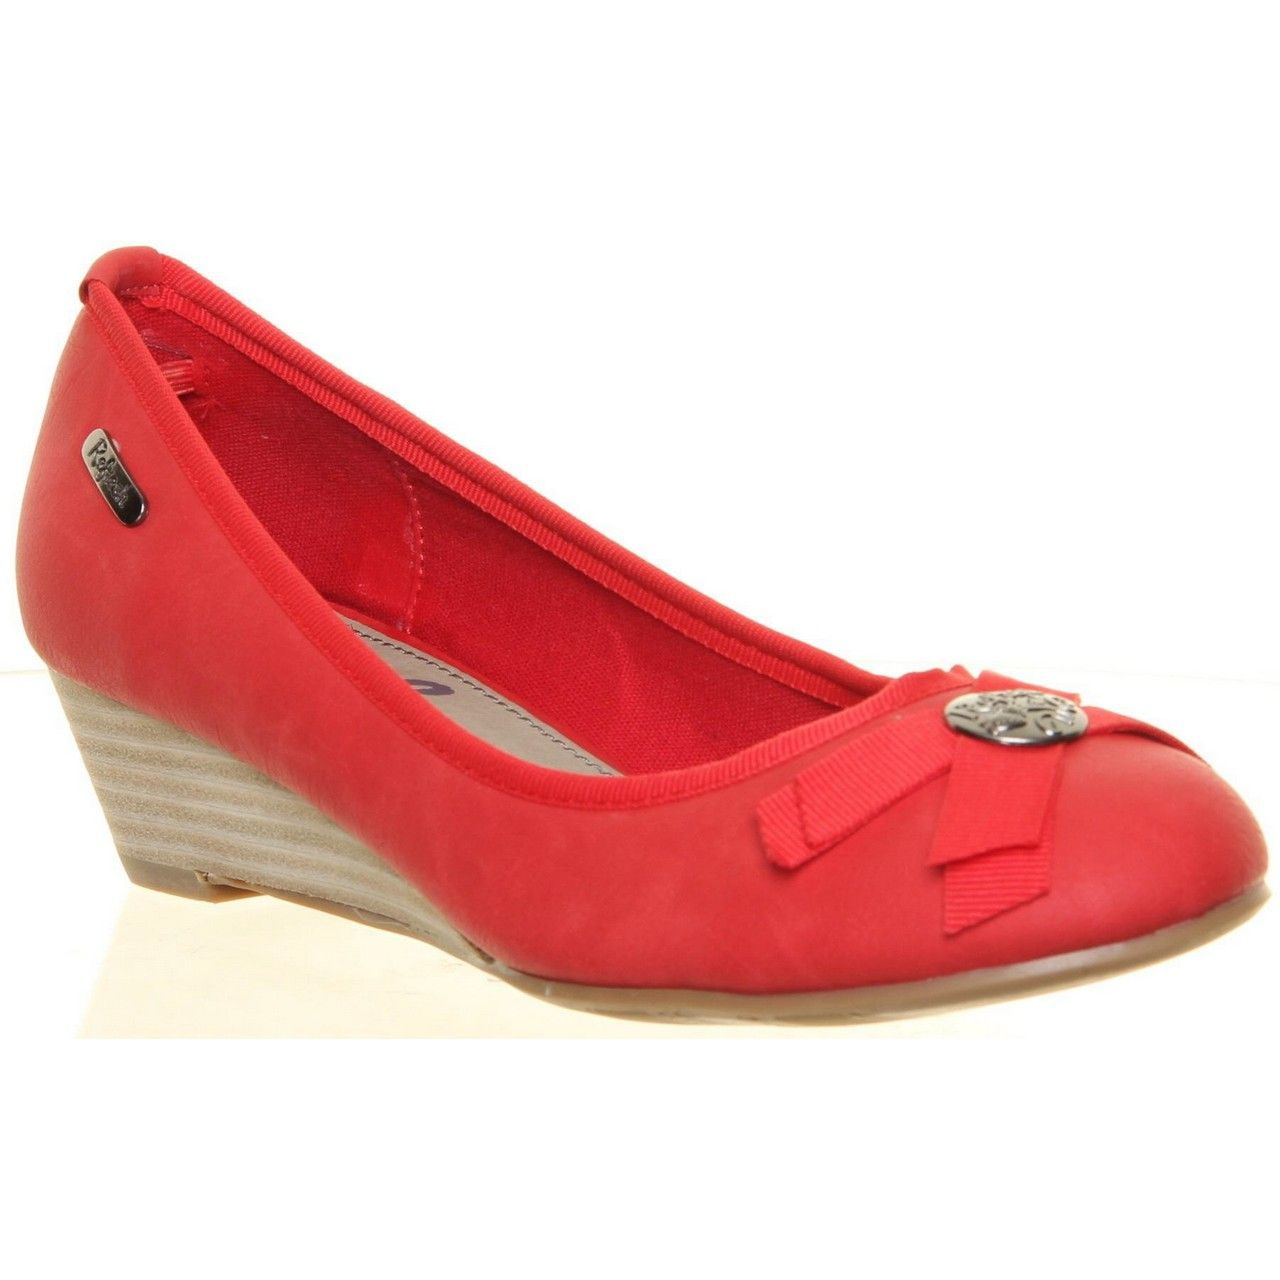 Refresh Red Low Wedge Pump - summer is coming!